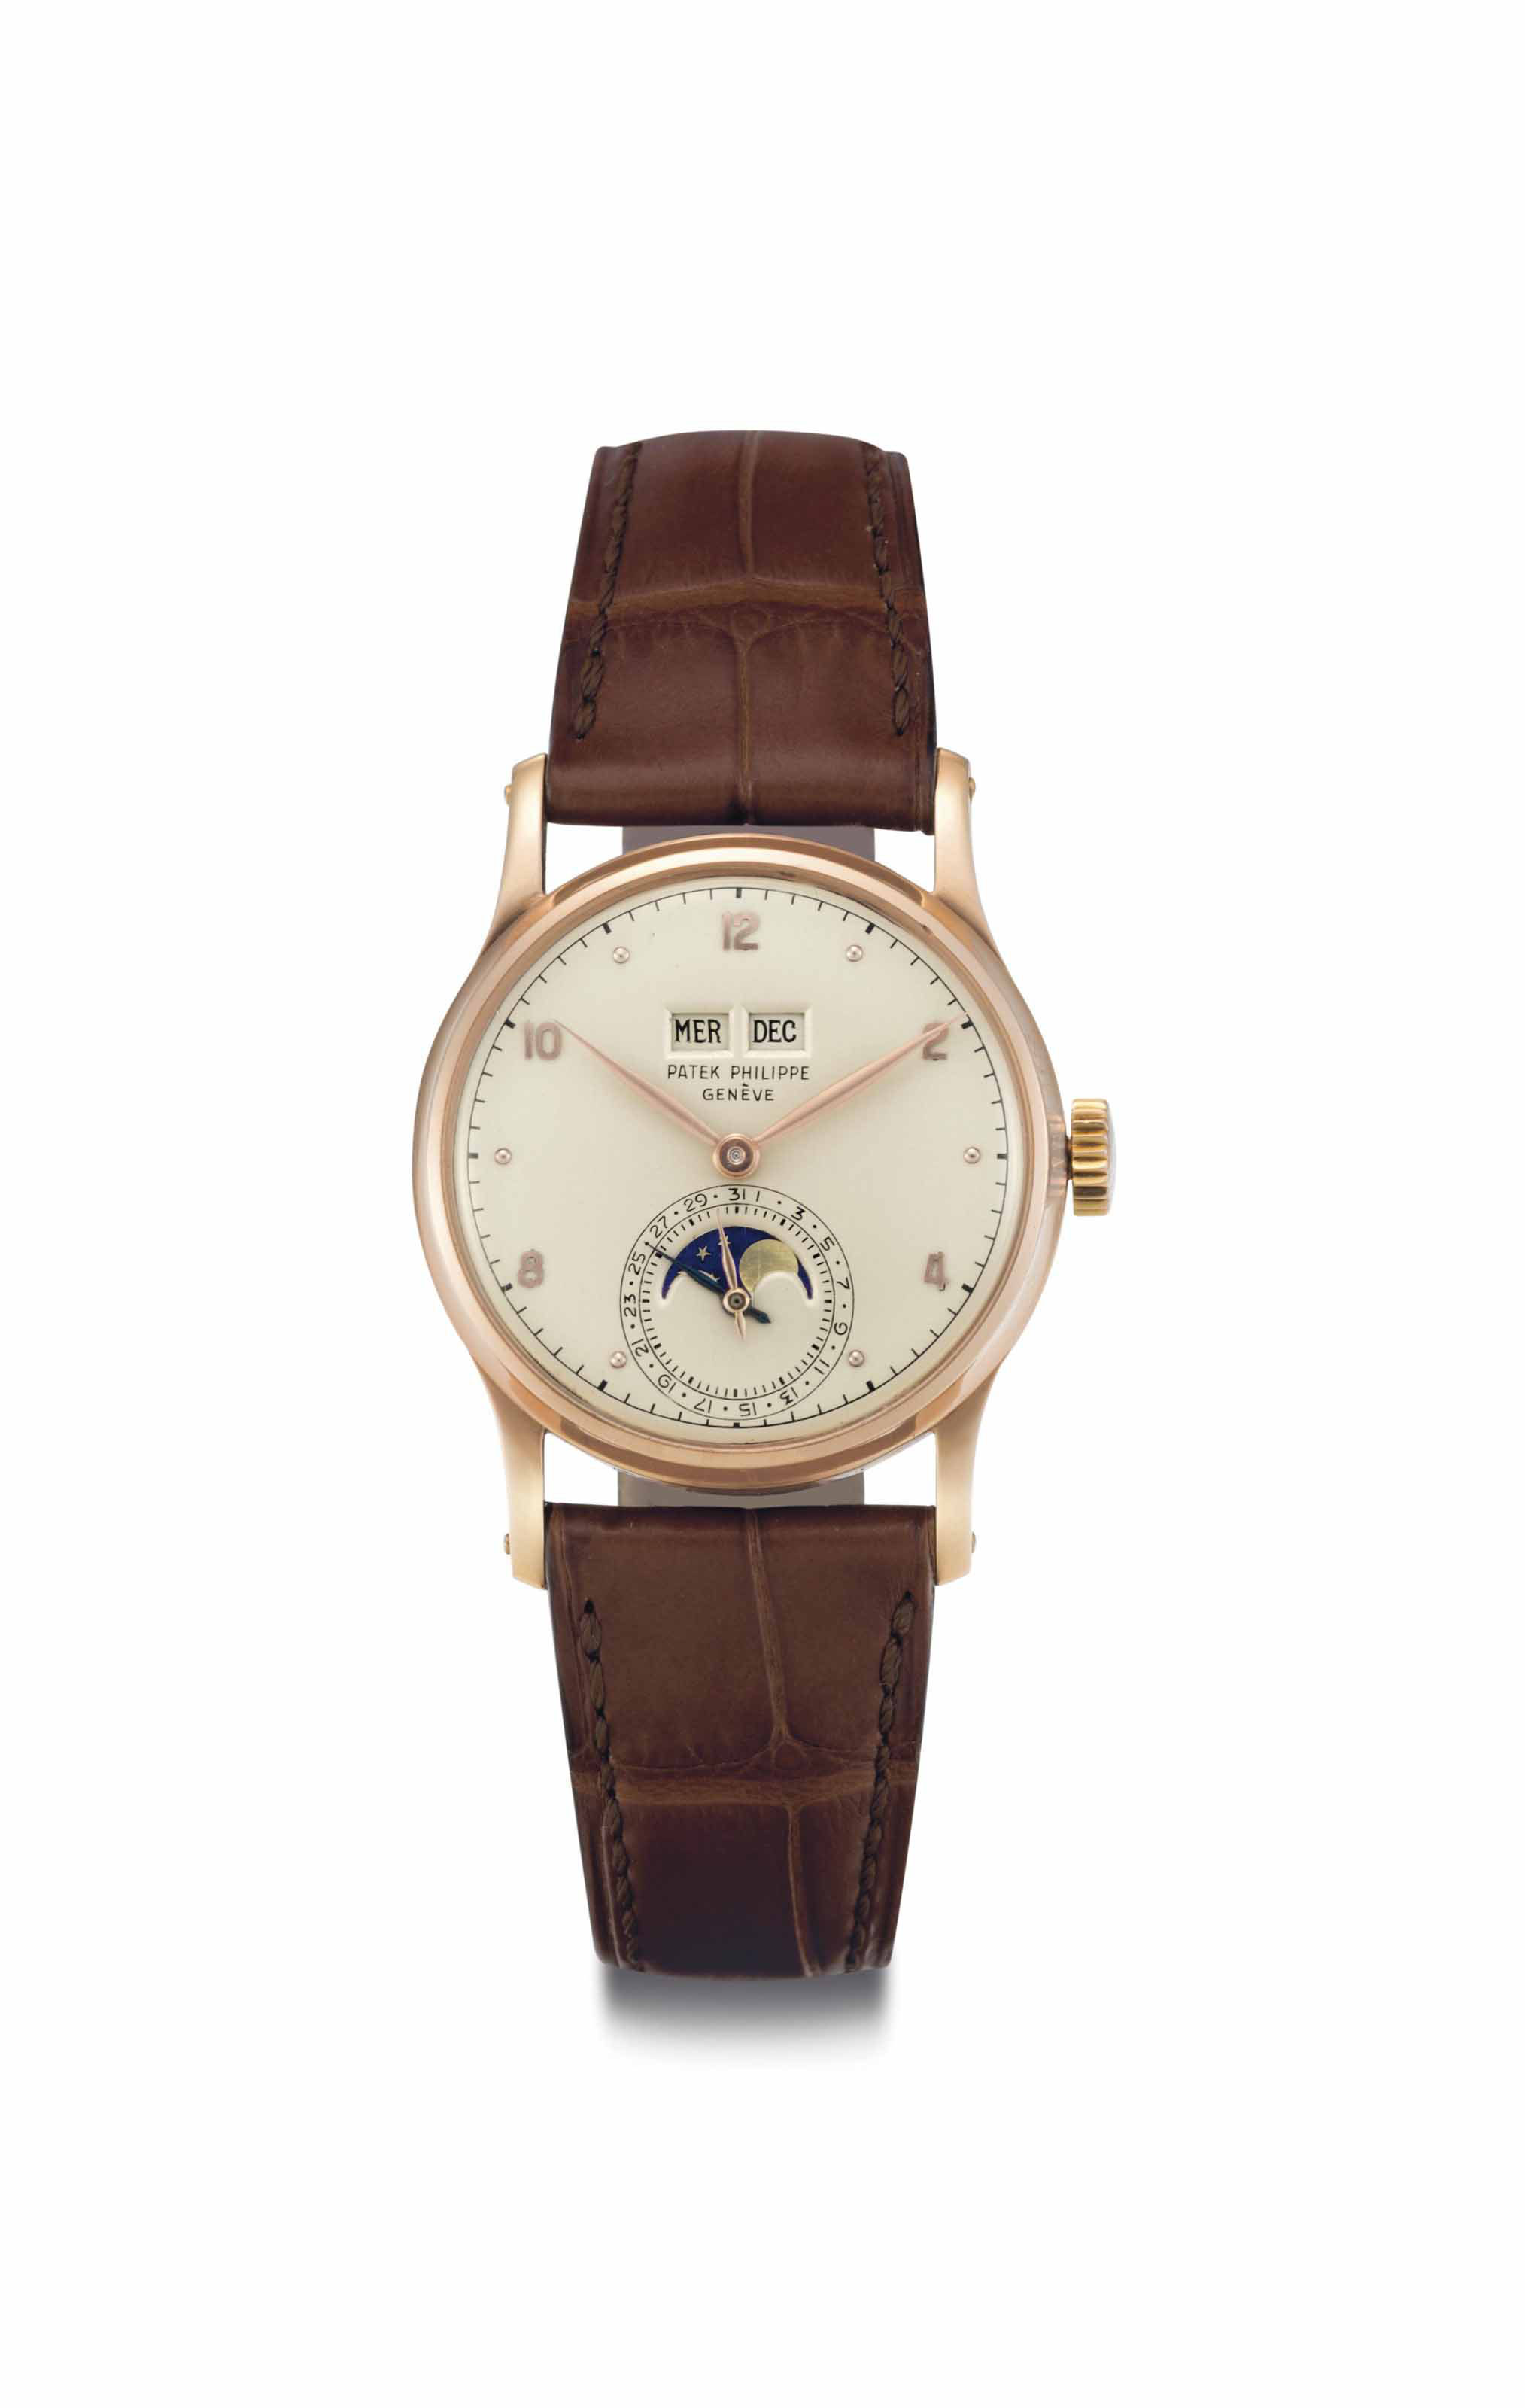 Patek Philippe. A Very Fine and Rare 18k Pink Gold Perpetual Calendar Wristwatch with Phases of the Moon